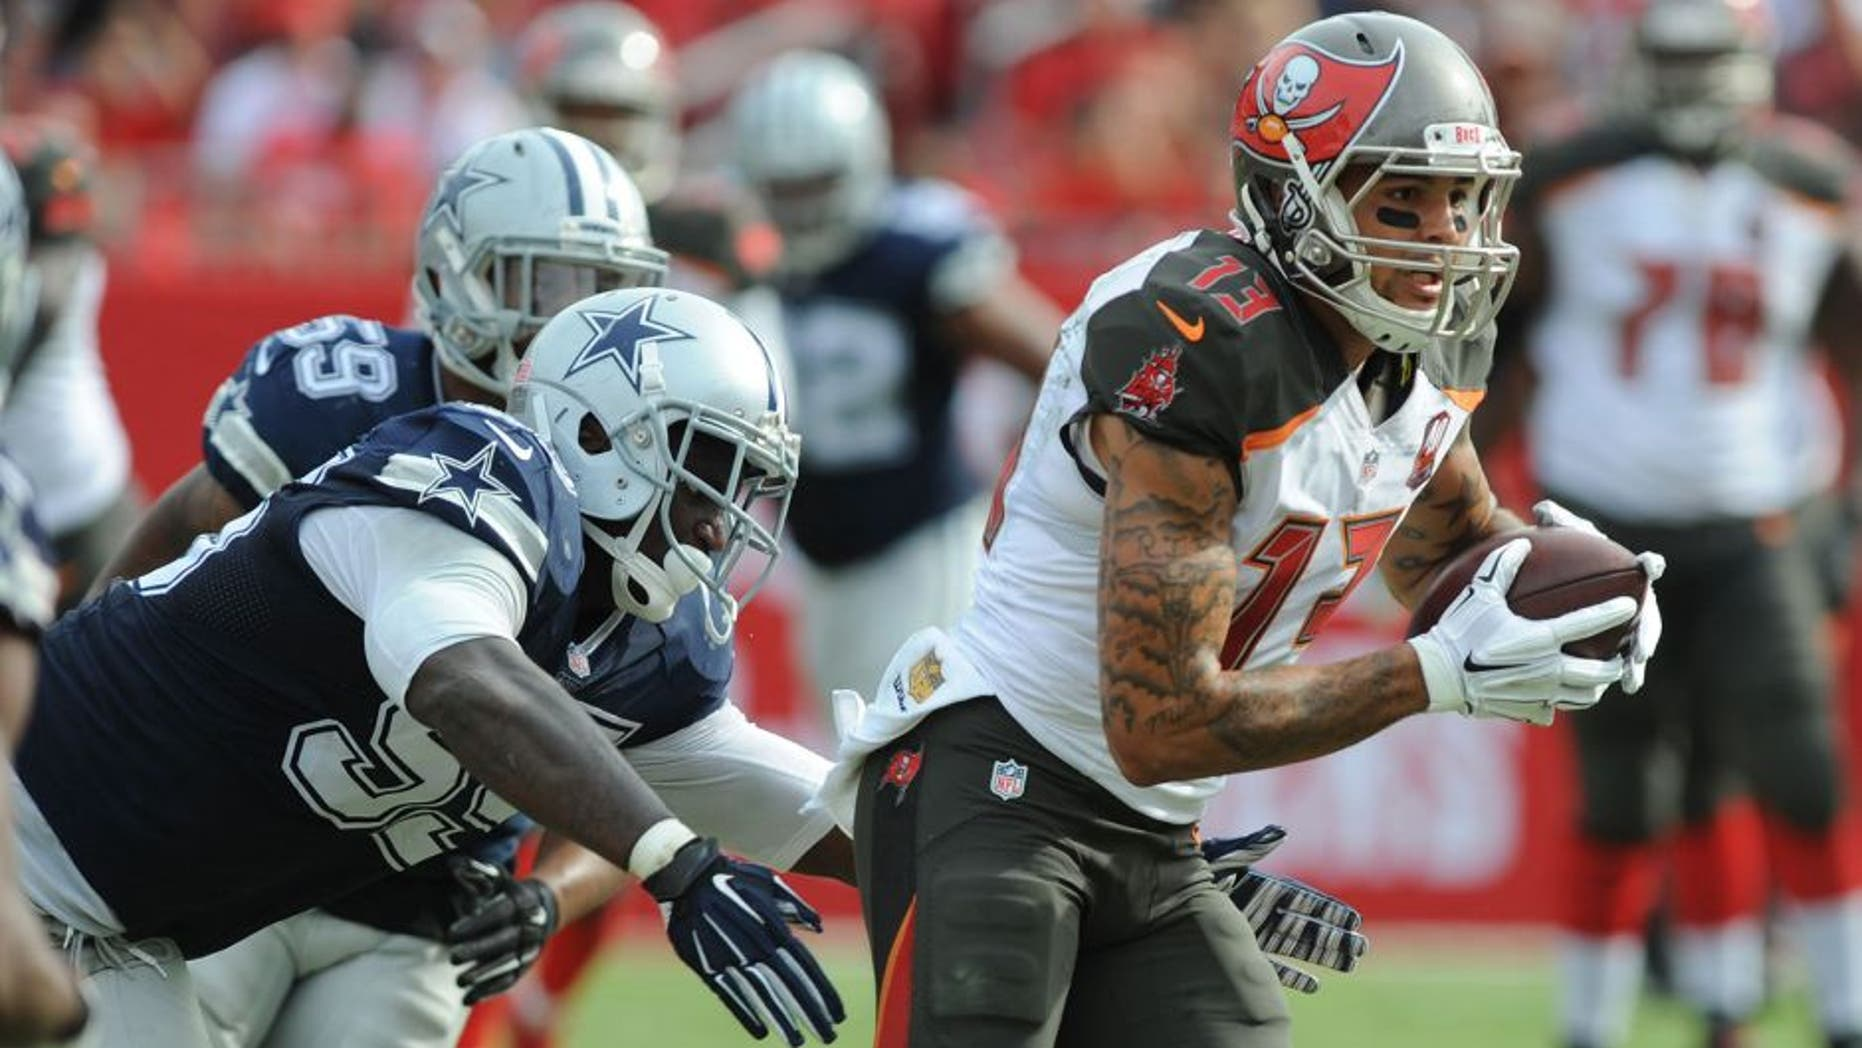 TAMPA, FL - NOVEMBER 15: Wide receiver Mike Evans #13 of the Tampa Bay Buccaneers runs after the catch past defensive tackle David Irving #95 of the Dallas Cowboys in the second quarter at Raymond James Stadium on November 15, 2015 in Tampa, Florida. (Photo by Cliff McBride/Getty Images)